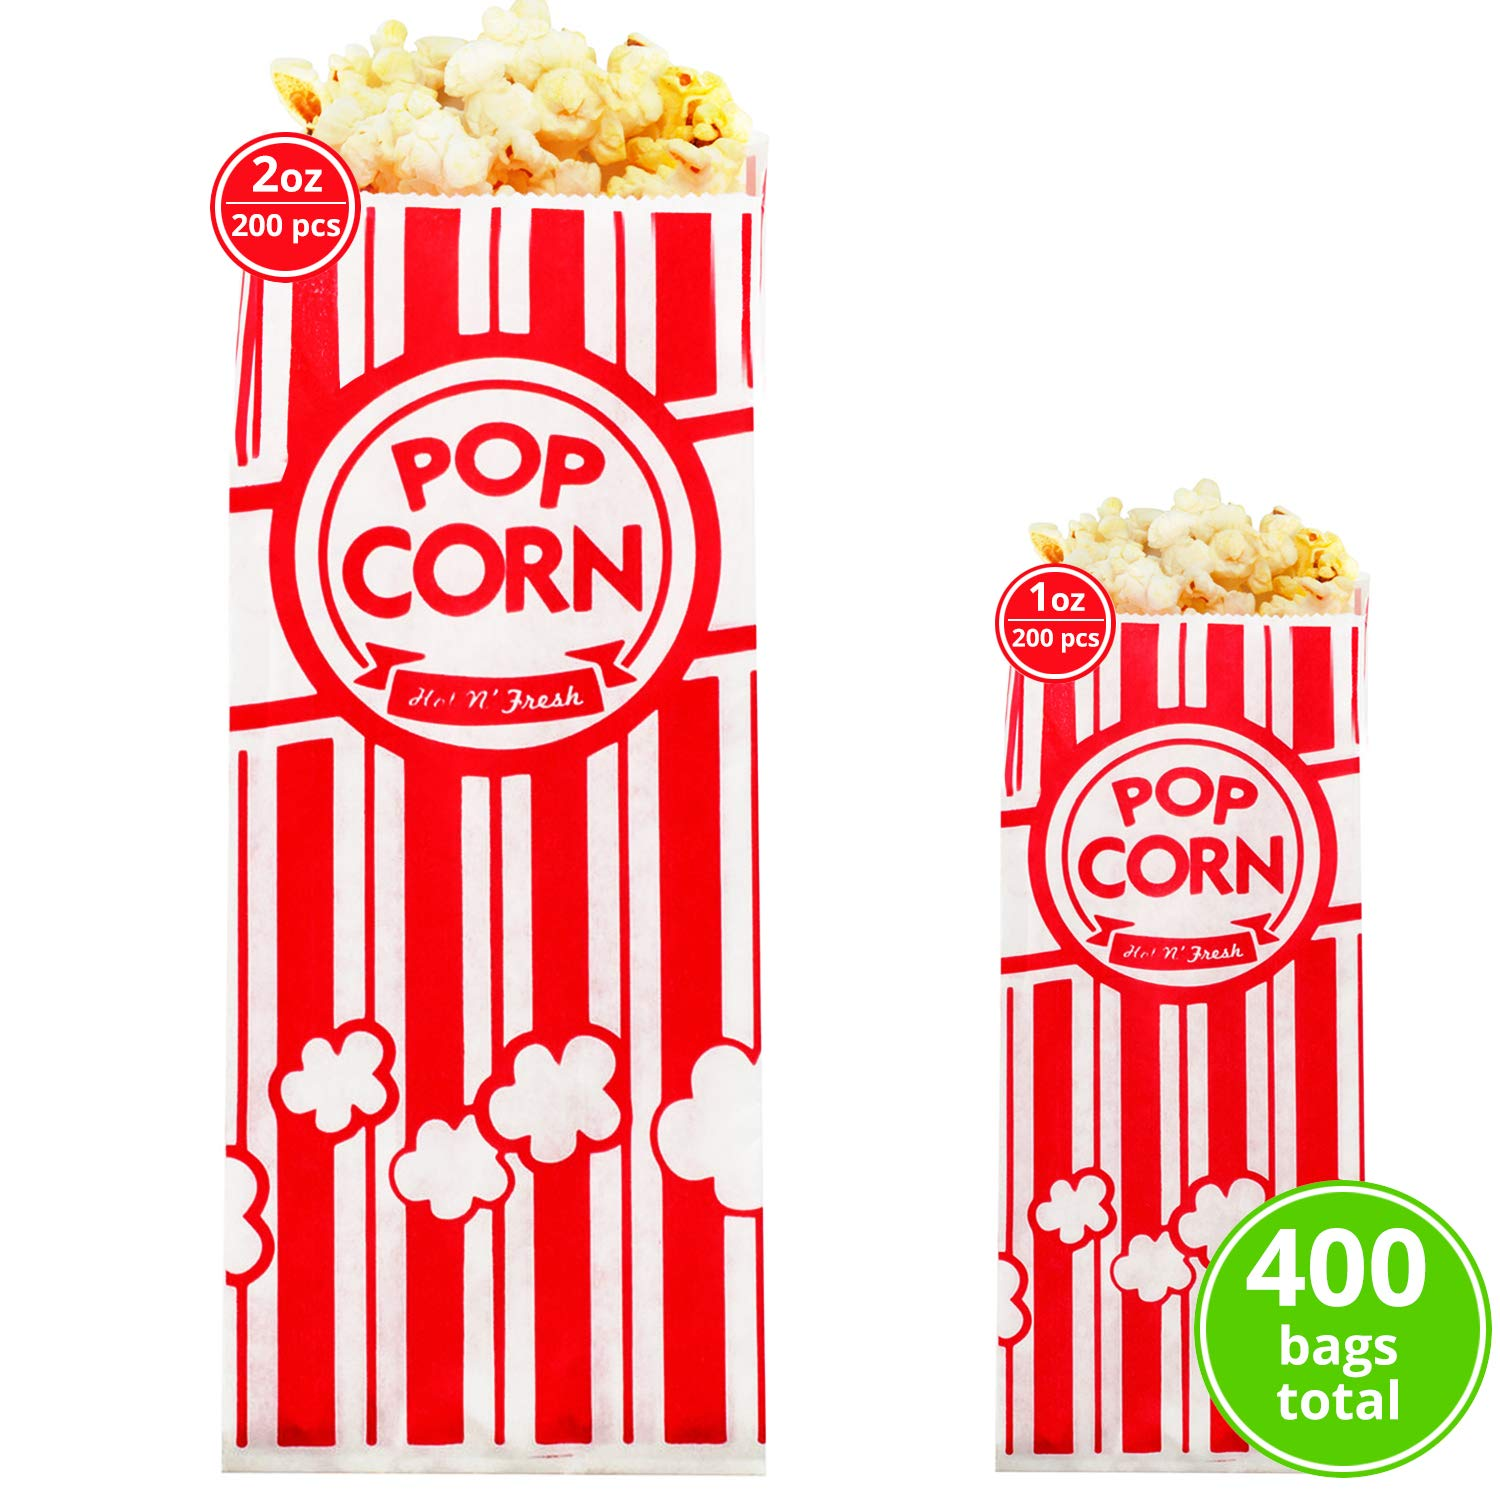 Carnival King Paper Popcorn Bags 1oz (200 Pieces) - Popcorn Bags 2 oz (200 Pieces) - Popcorn Bags for Party Bundle - Complimentary CUSINIUM Coasters, Ebook by Carnival King